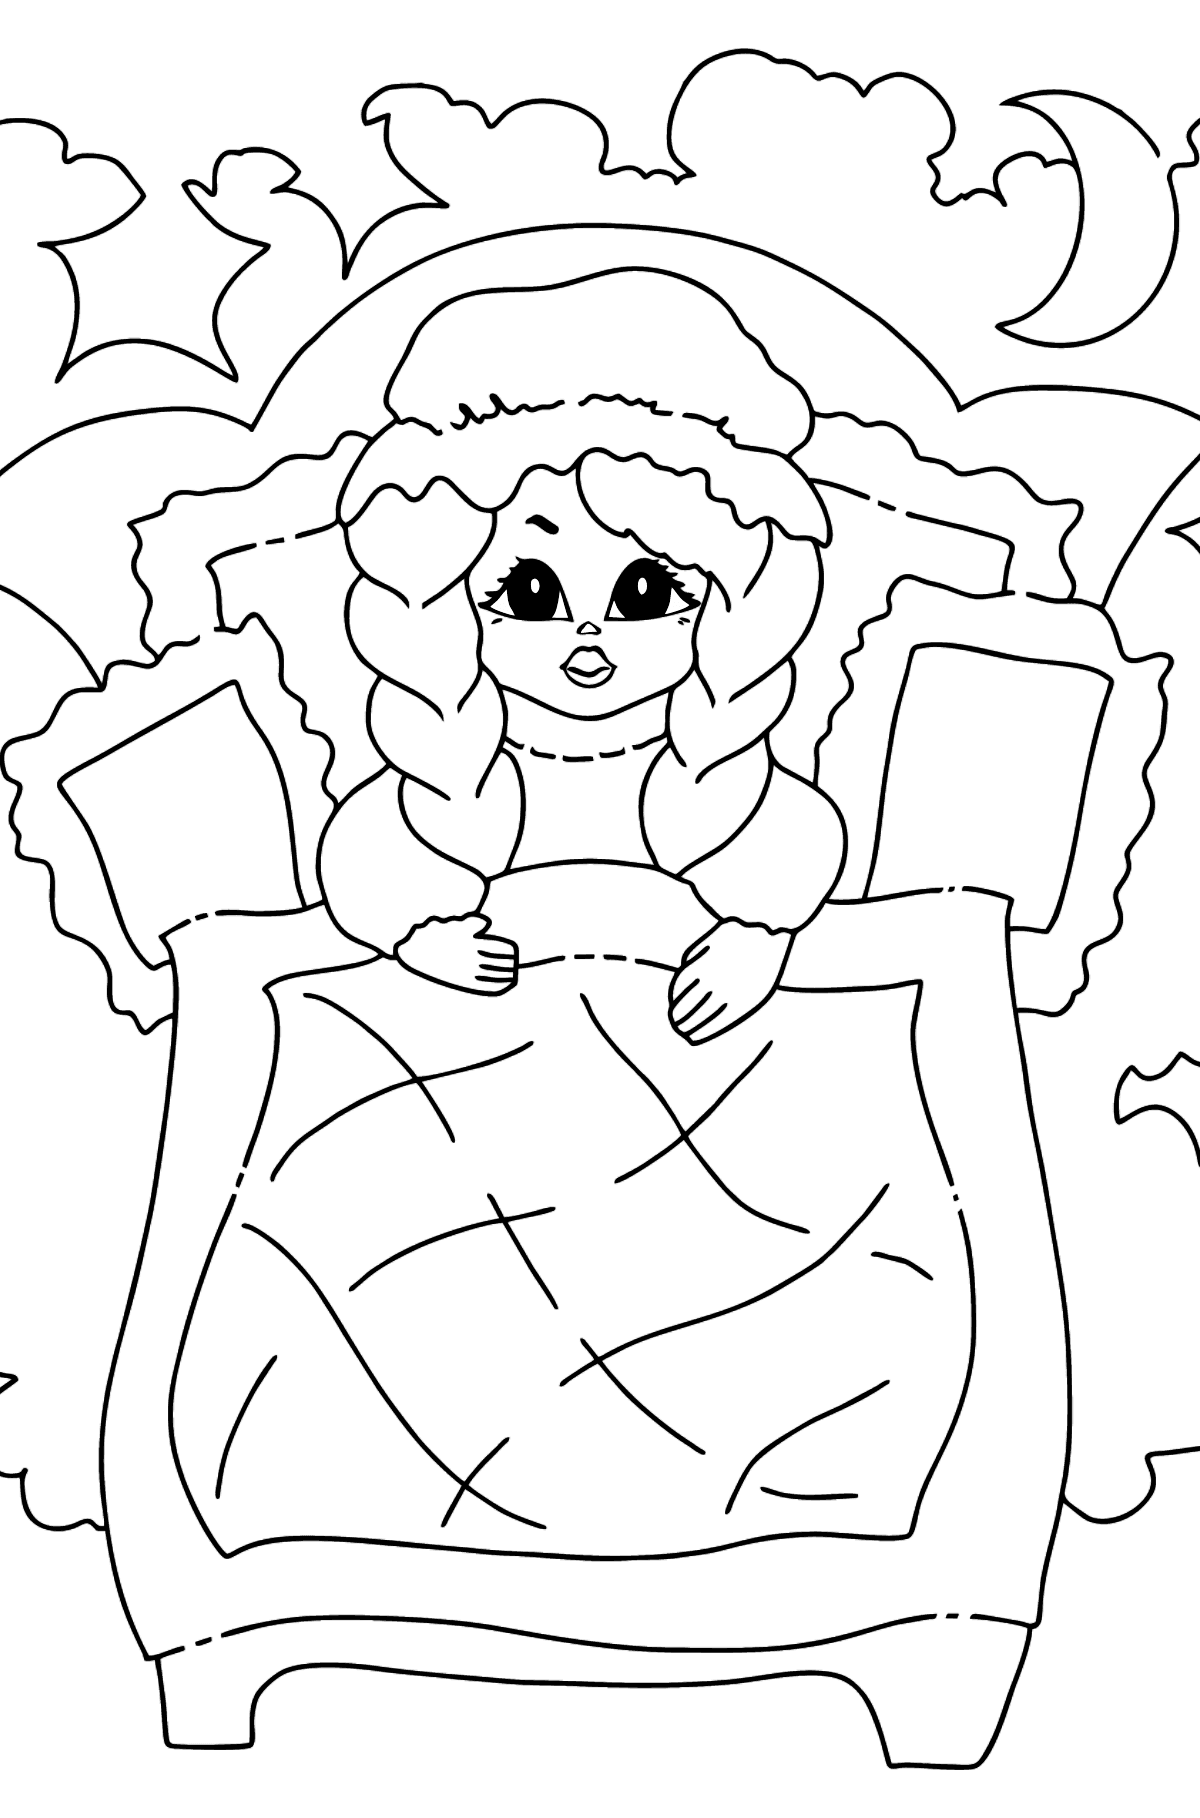 Coloring Picture - A Princess in Bed - Coloring Pages for Kids